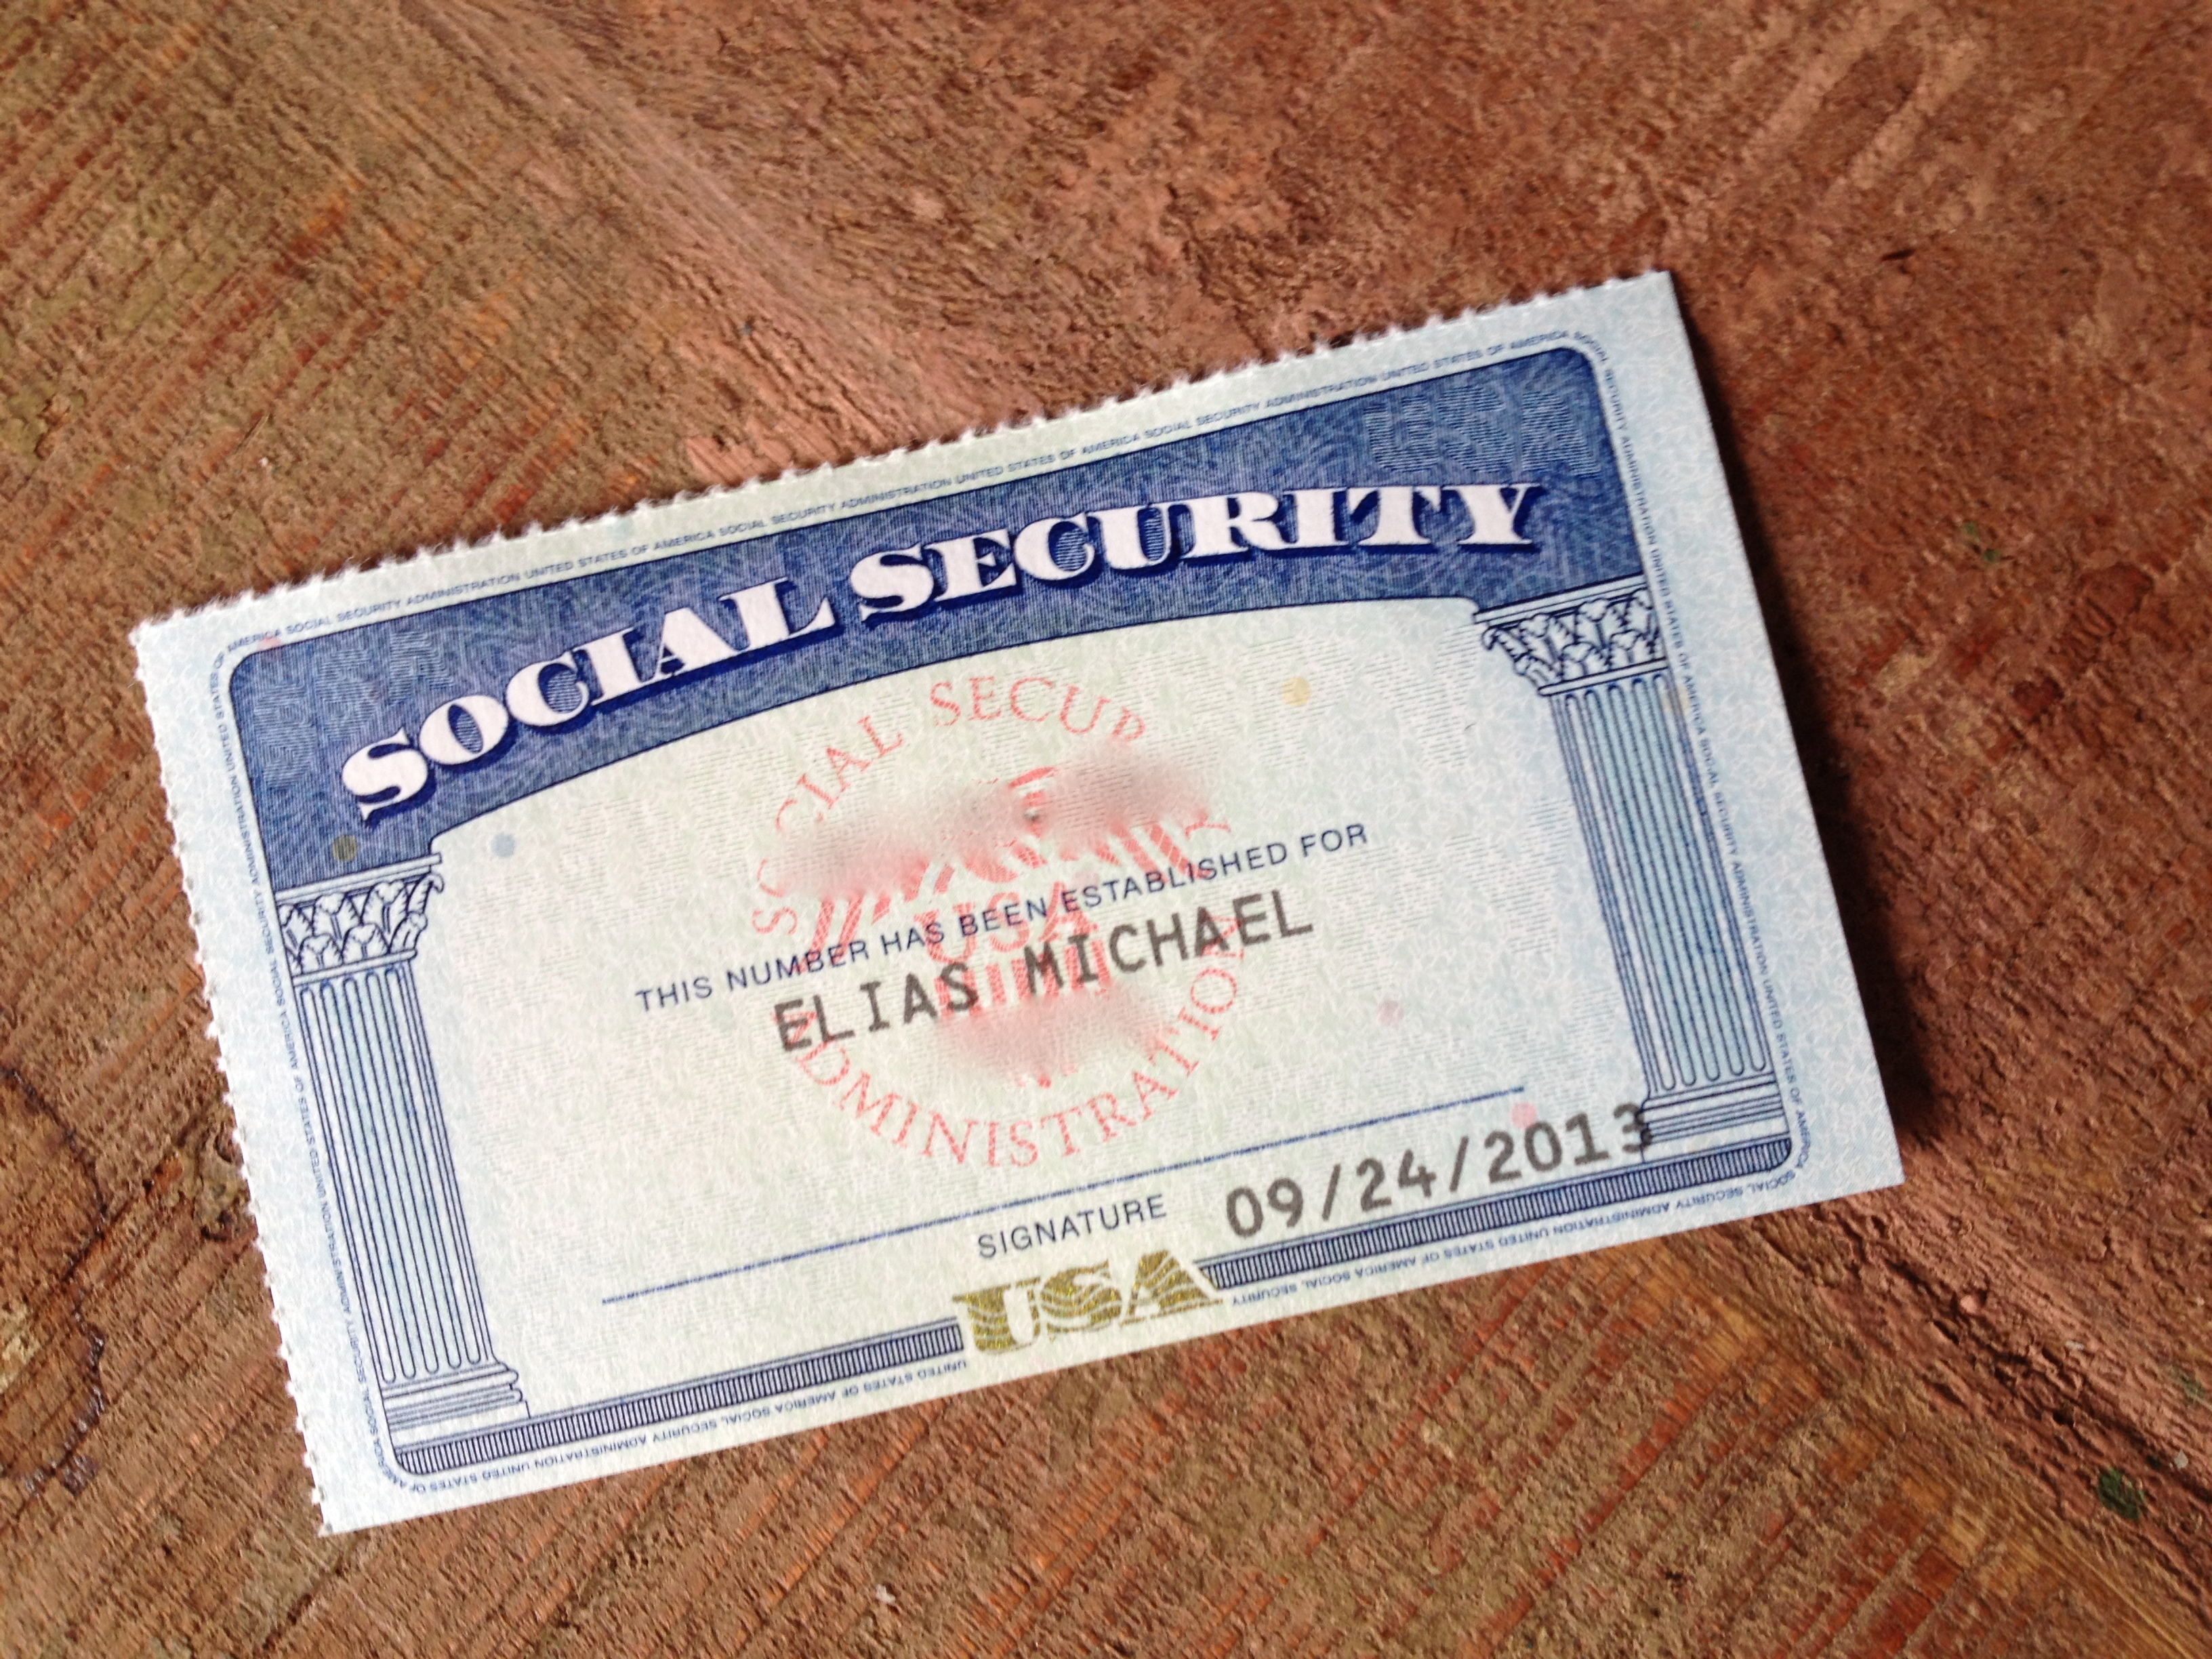 Number Non-us Citizen On Get Vermont Social How Guide - Can Security Republic A Step-by-step